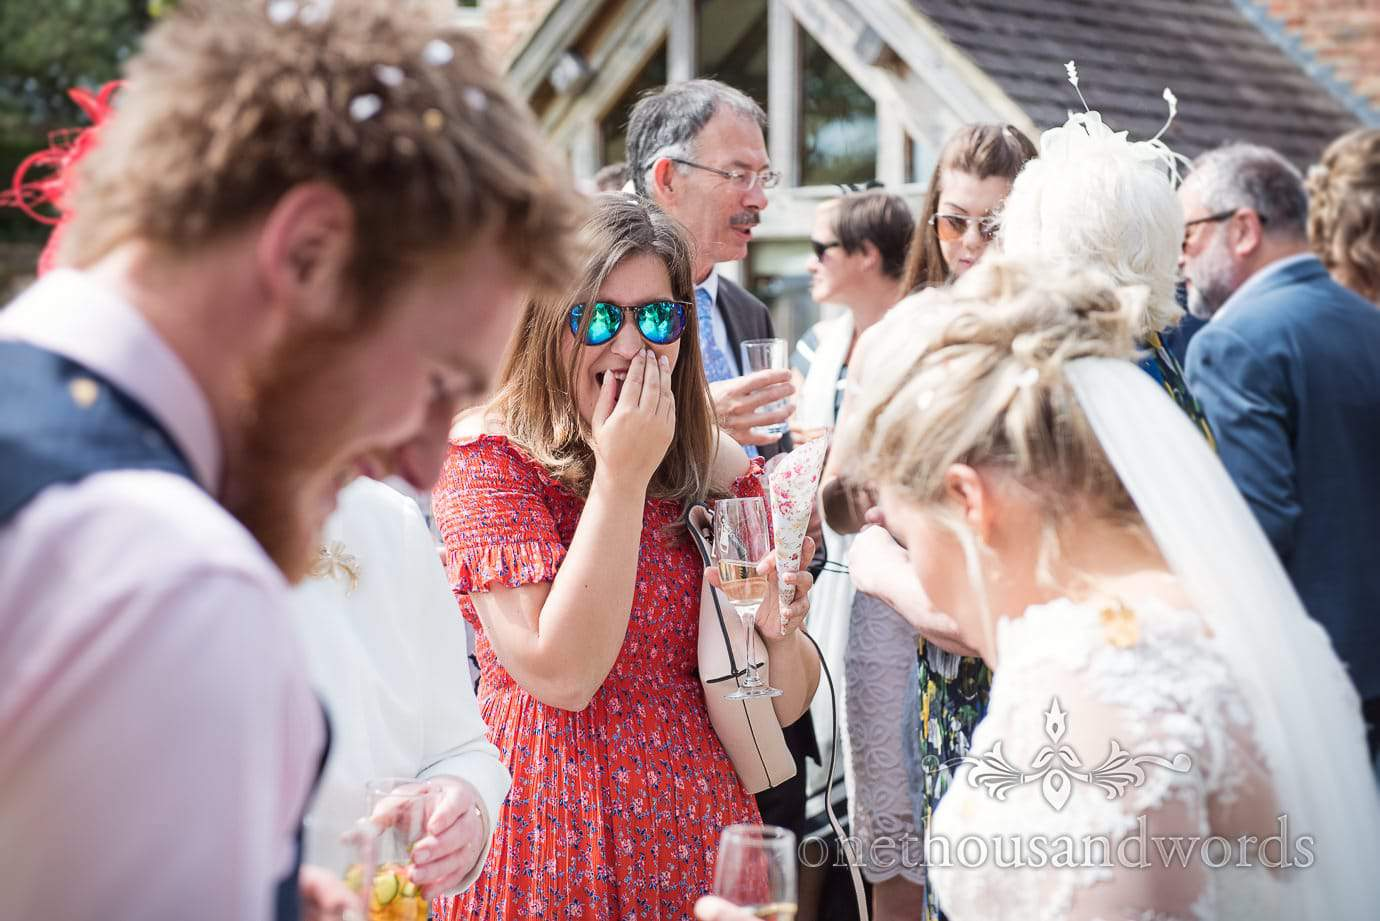 Wedding guest in red flower print dress and reflective sunglasses laughs at confetti